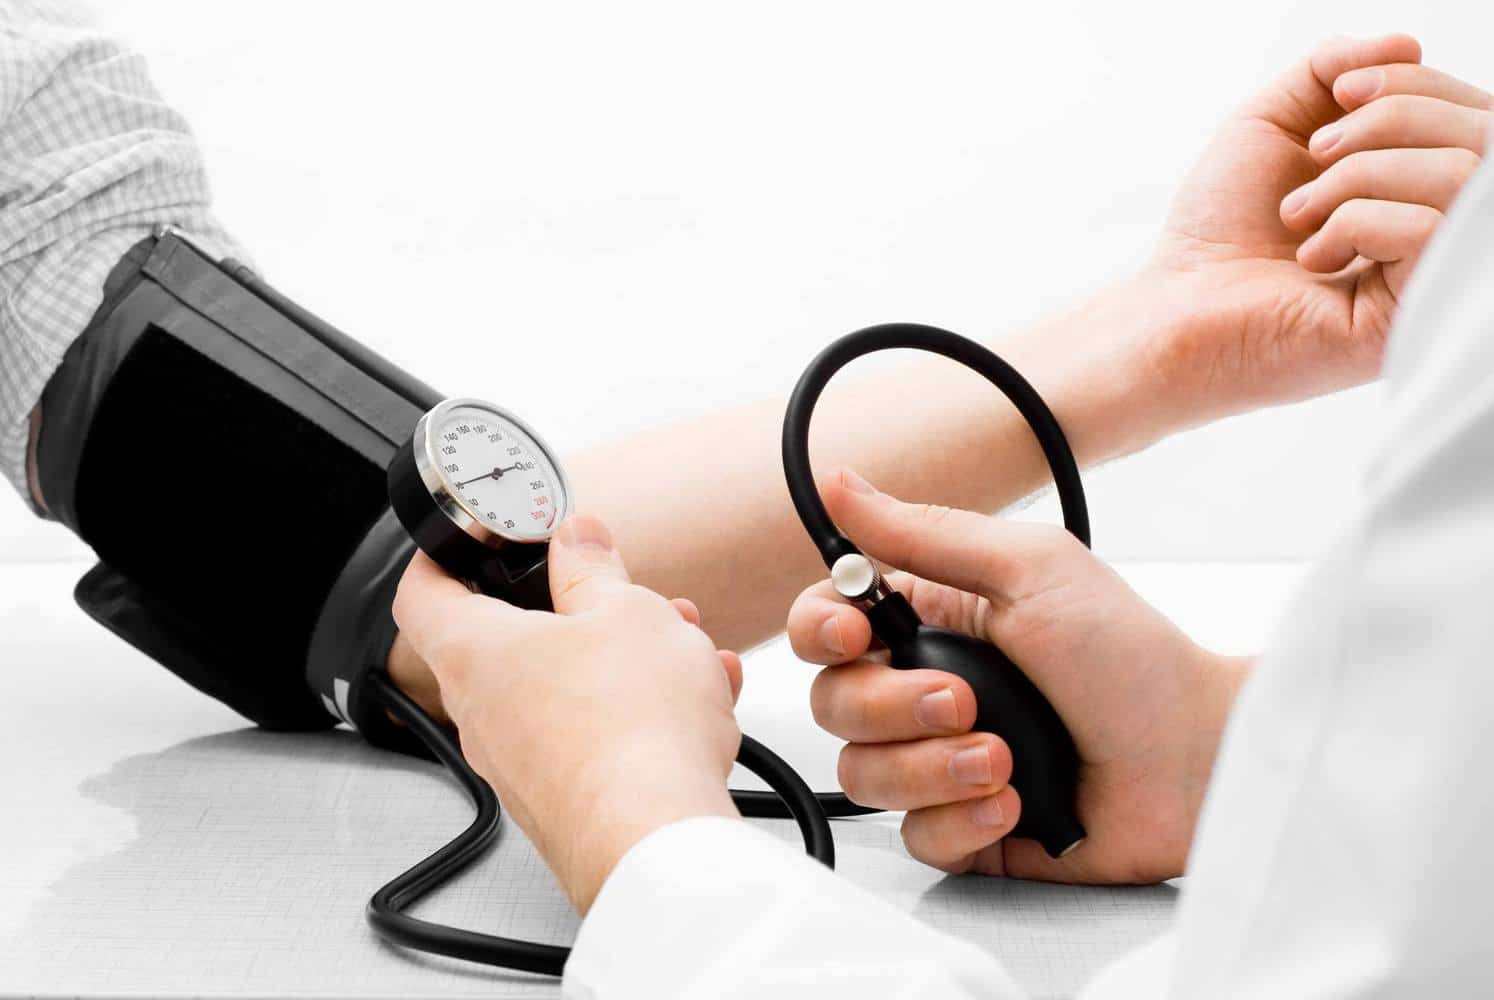 A doctor measuring blood pressure with a device.